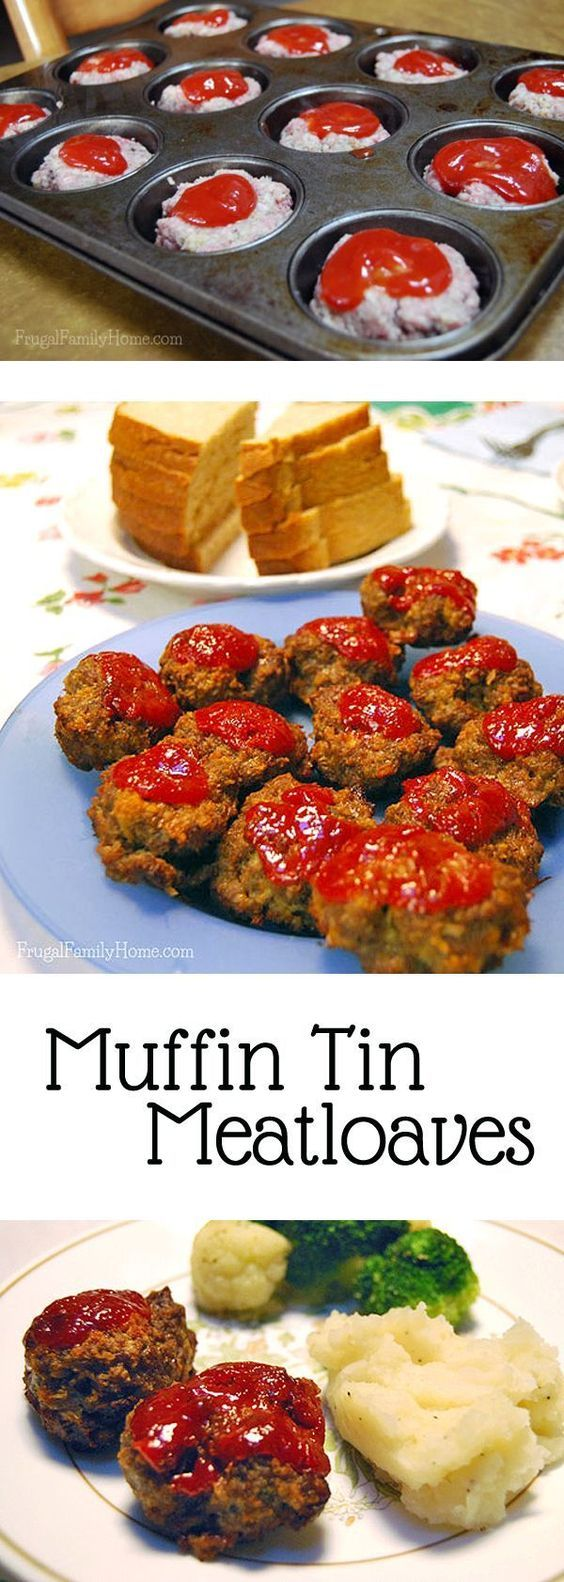 Make meatloaf more appealing to the kids, cut it down to size. Make mini meatloaves that the kids will eat with this dinner recipe. My kids don't really like meatloaf, but will gobble these down without one complaint.